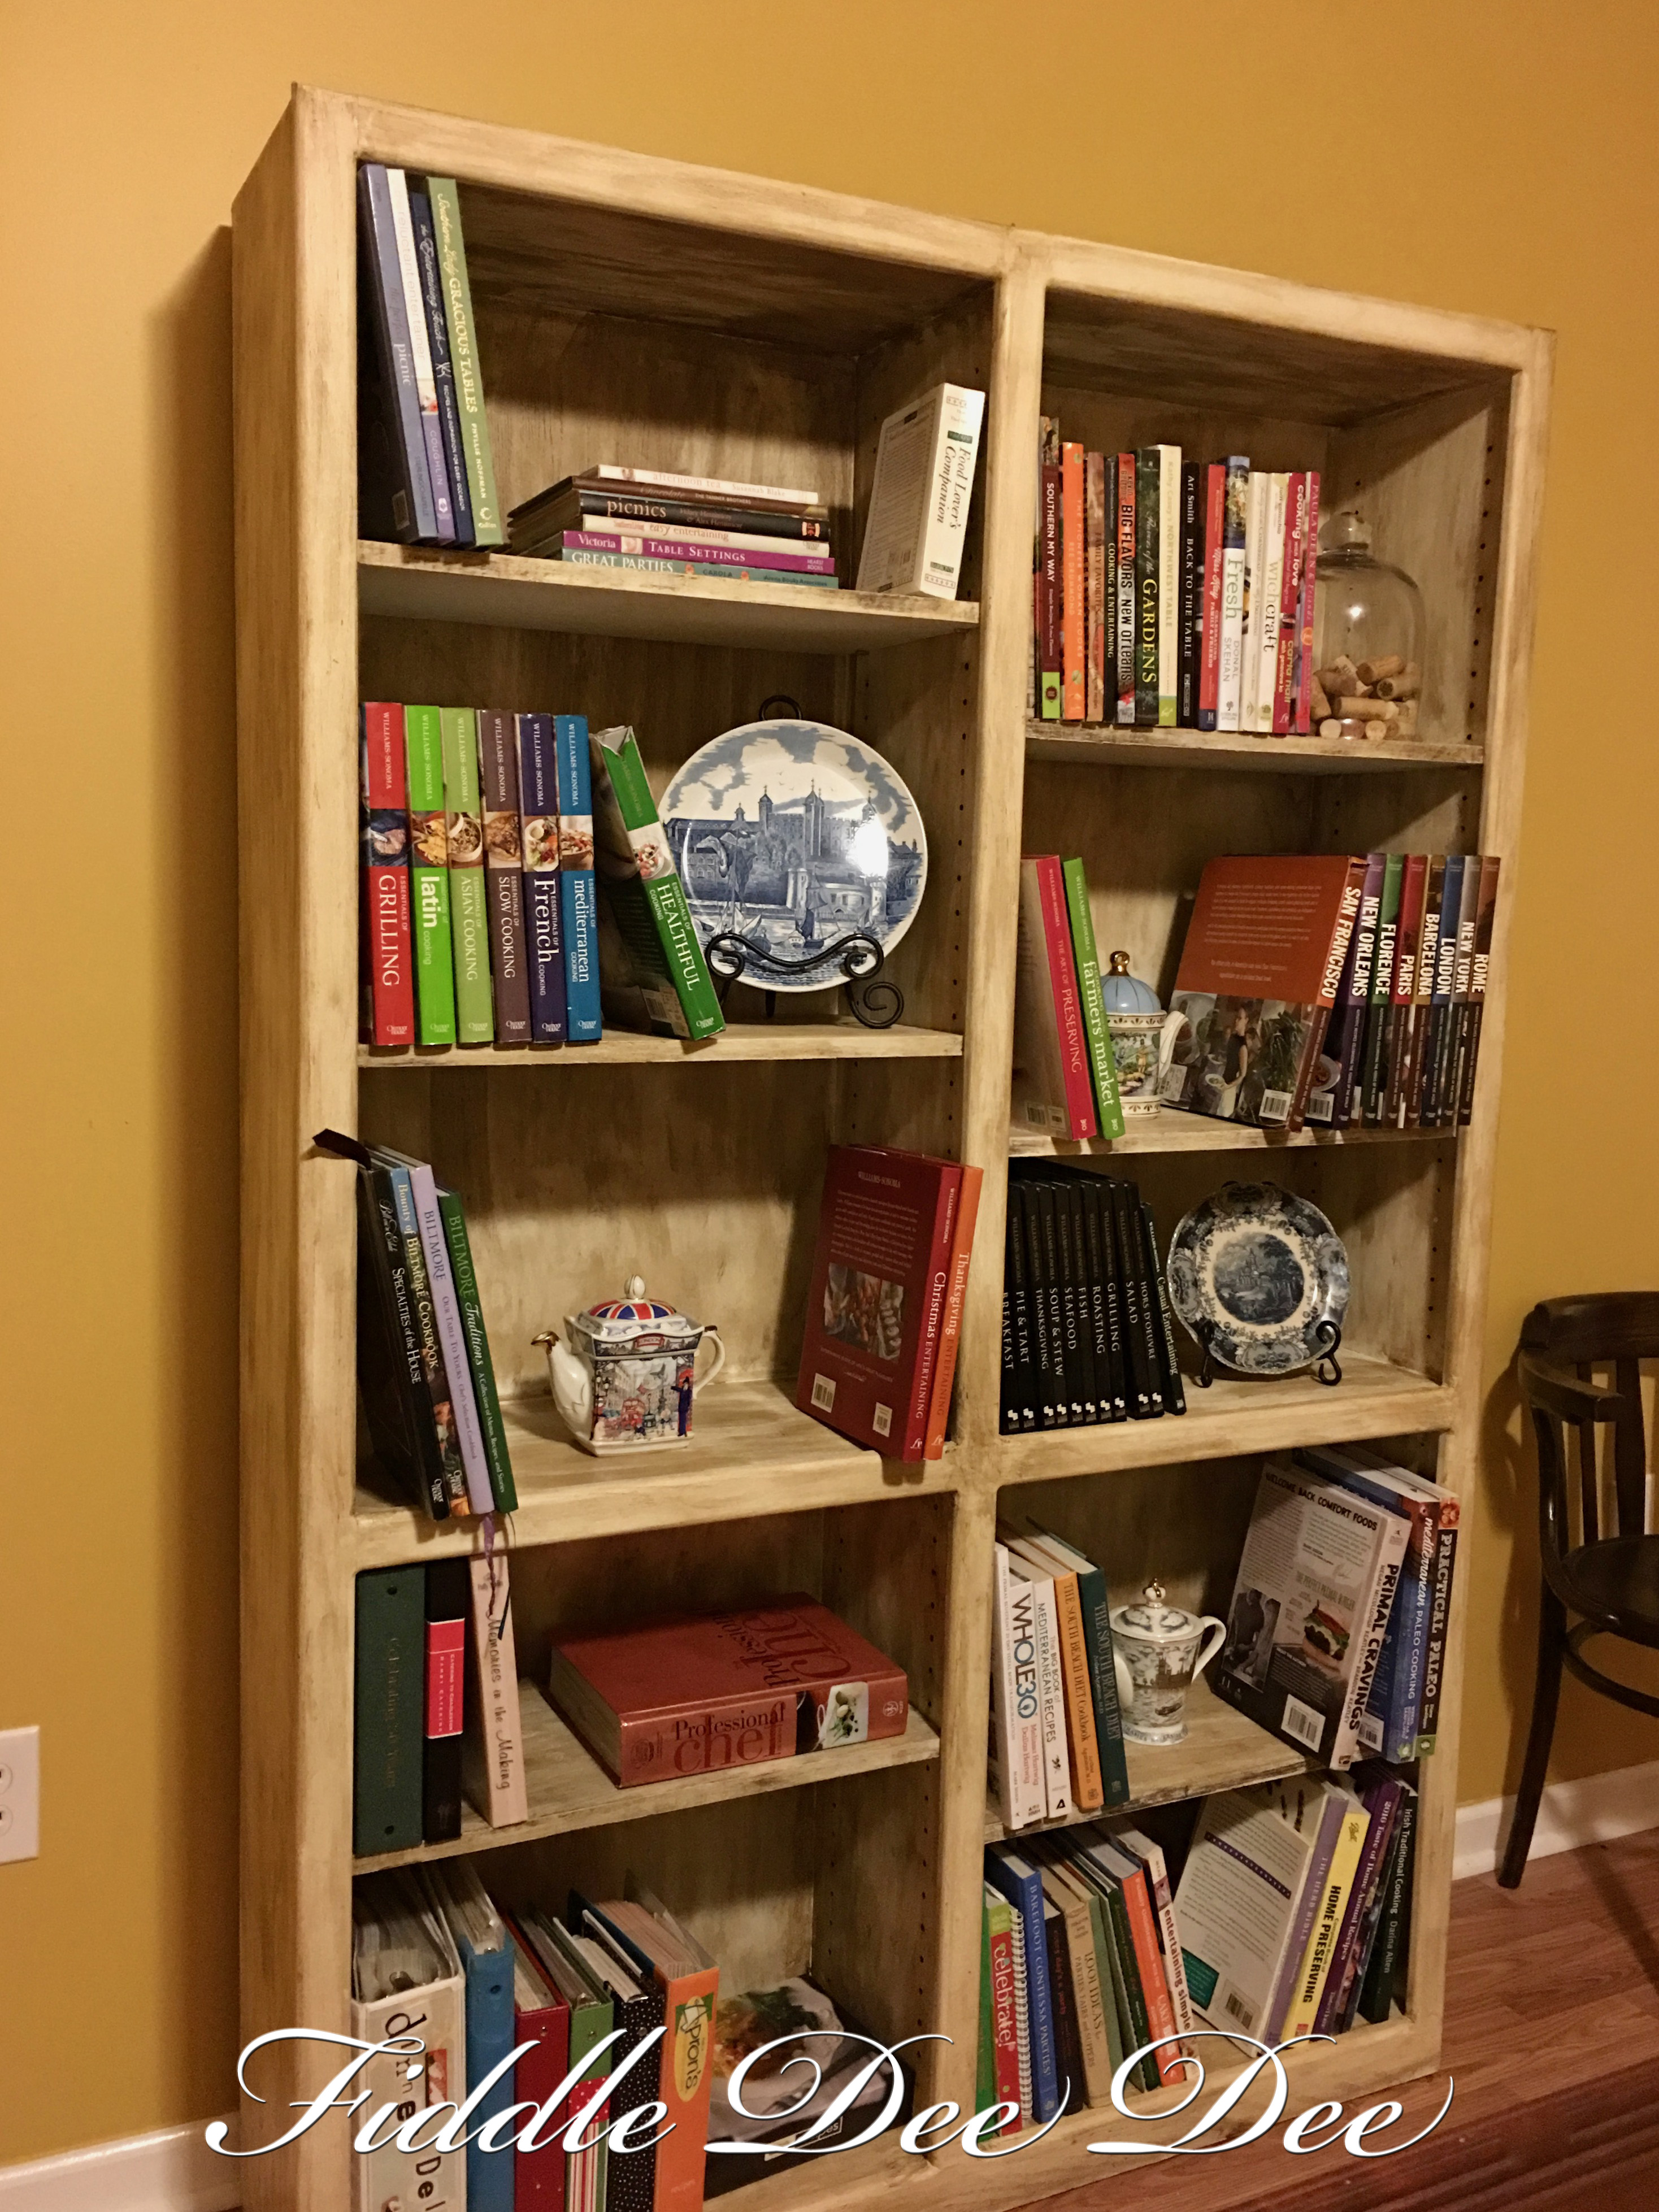 pegmata cicero own bodies of on uterpan les these bookshelves s letters the gens and shadow bookshelf in body text library ciceros between my photographs them form duterpans are two beauty traces wall d letter